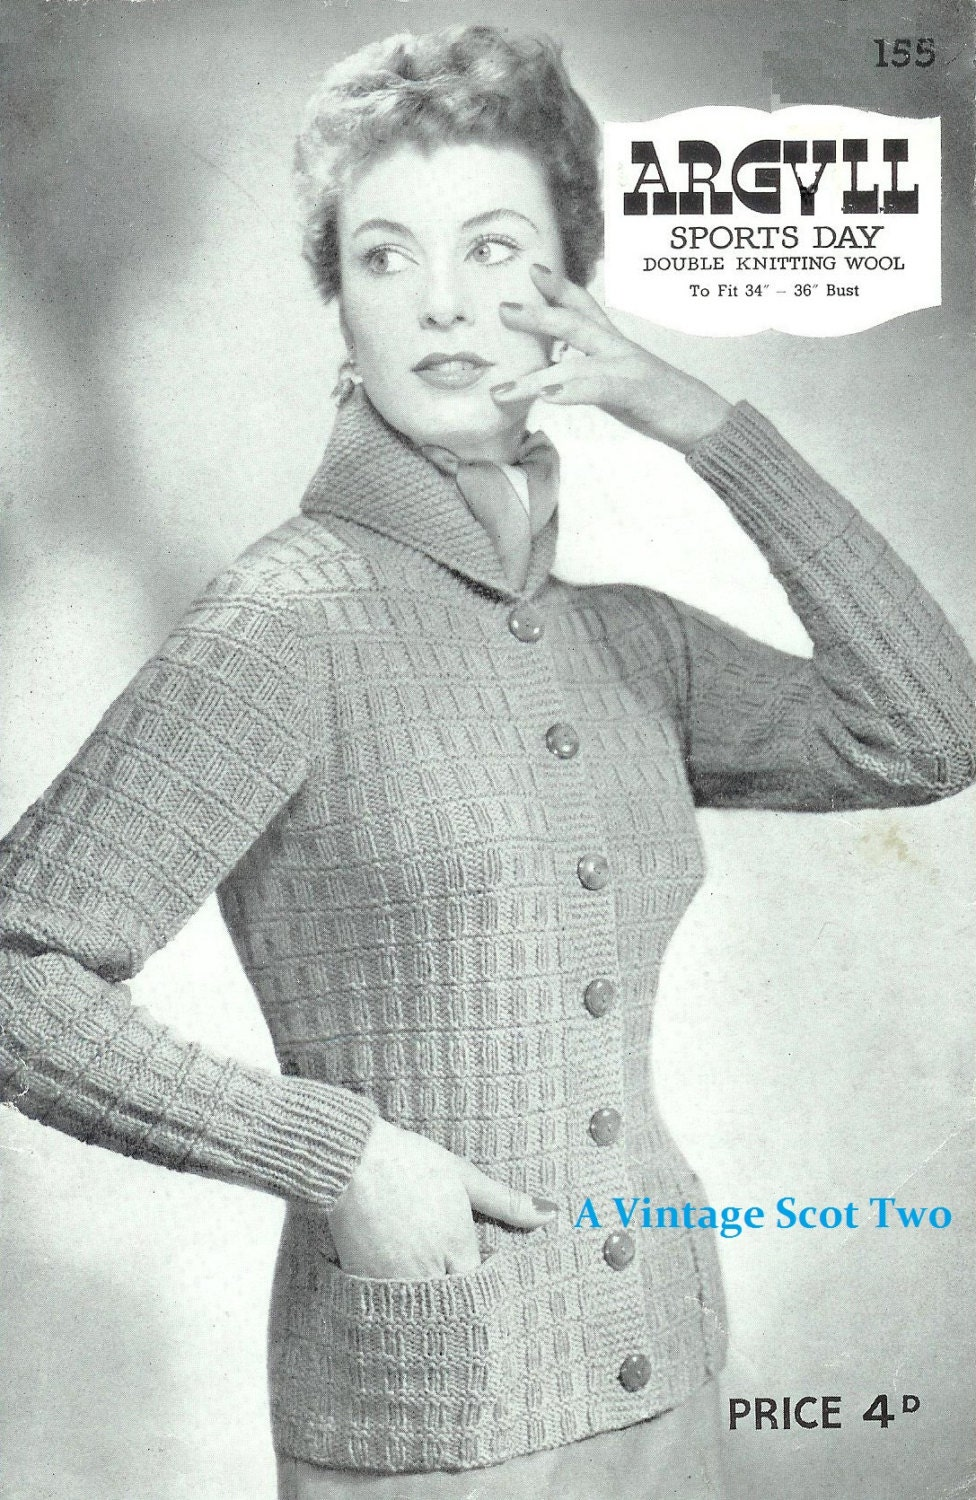 d8240888c40a DK 8ply LIGHT Worsted Jacket with a Roll Collar 34-36ins -Argyll 155 - PDF  of Vintage Ladies Knitting Patterns from 2VintageScot on Etsy Studio